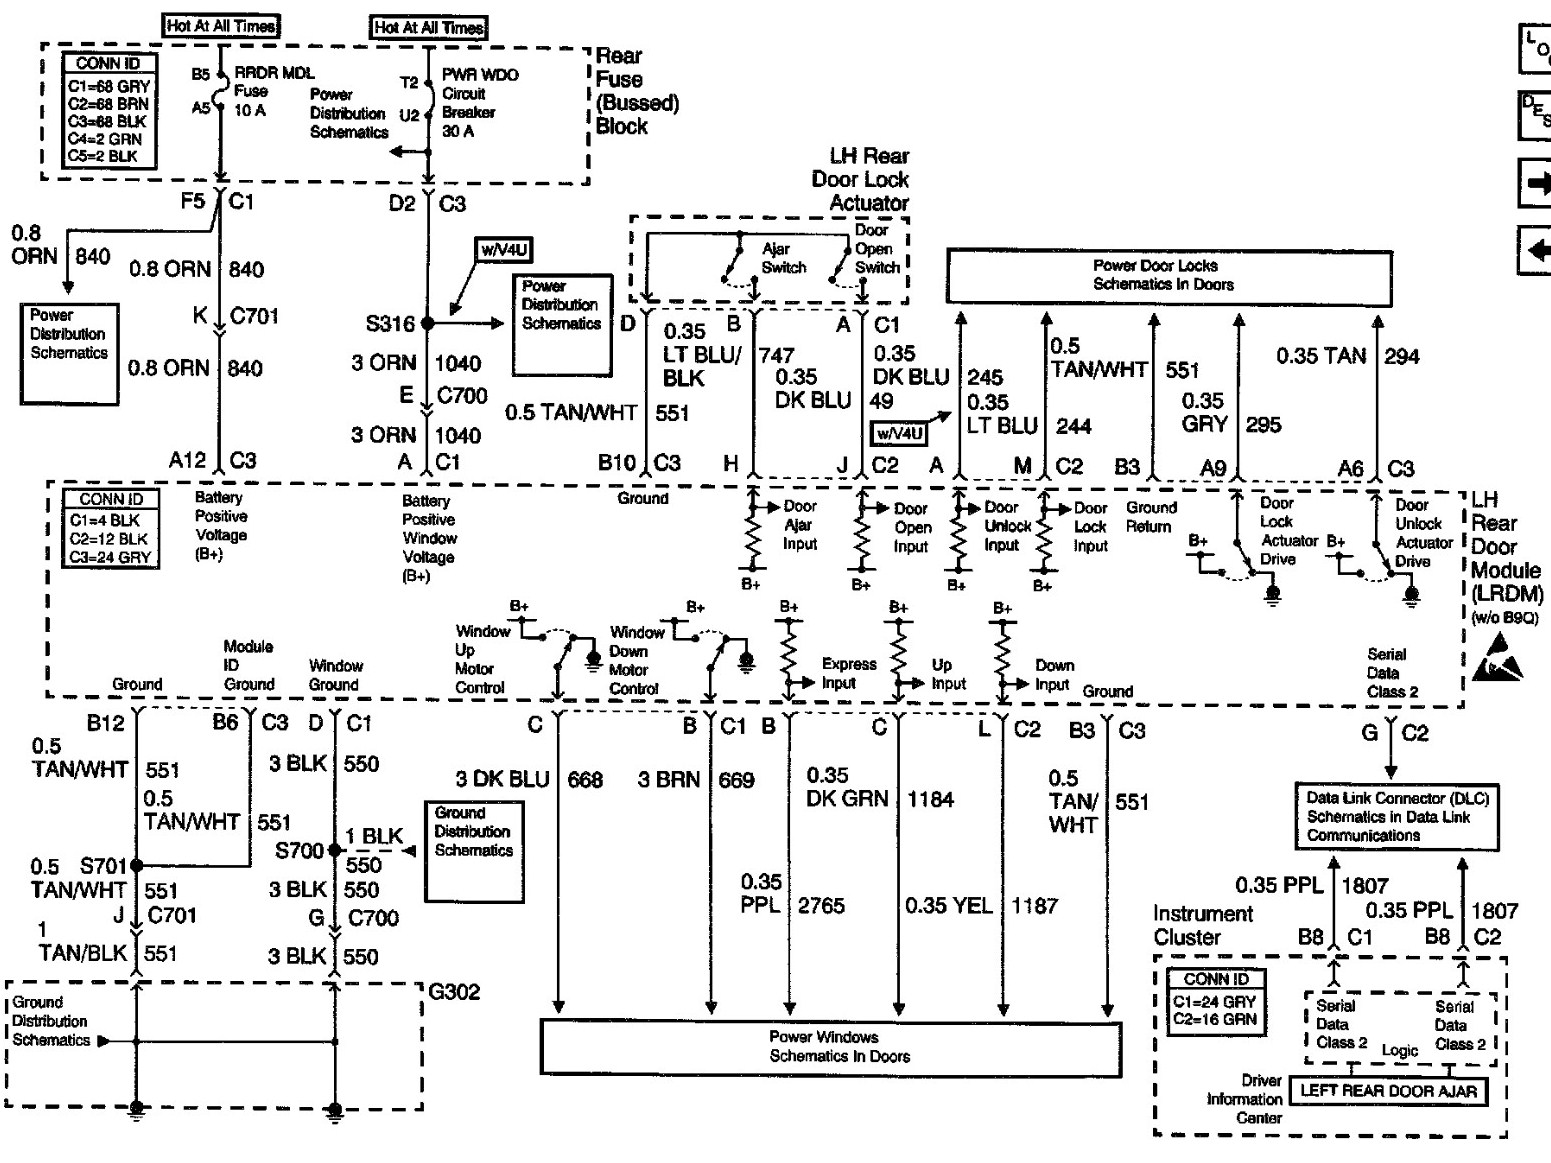 Head Light Wiring Diagram Yamaha Srx 700 Circuit Symbols Xt 500 06 Cts Complete Diagrams U2022 Rh Sammich Co Bmw K75 Mtd